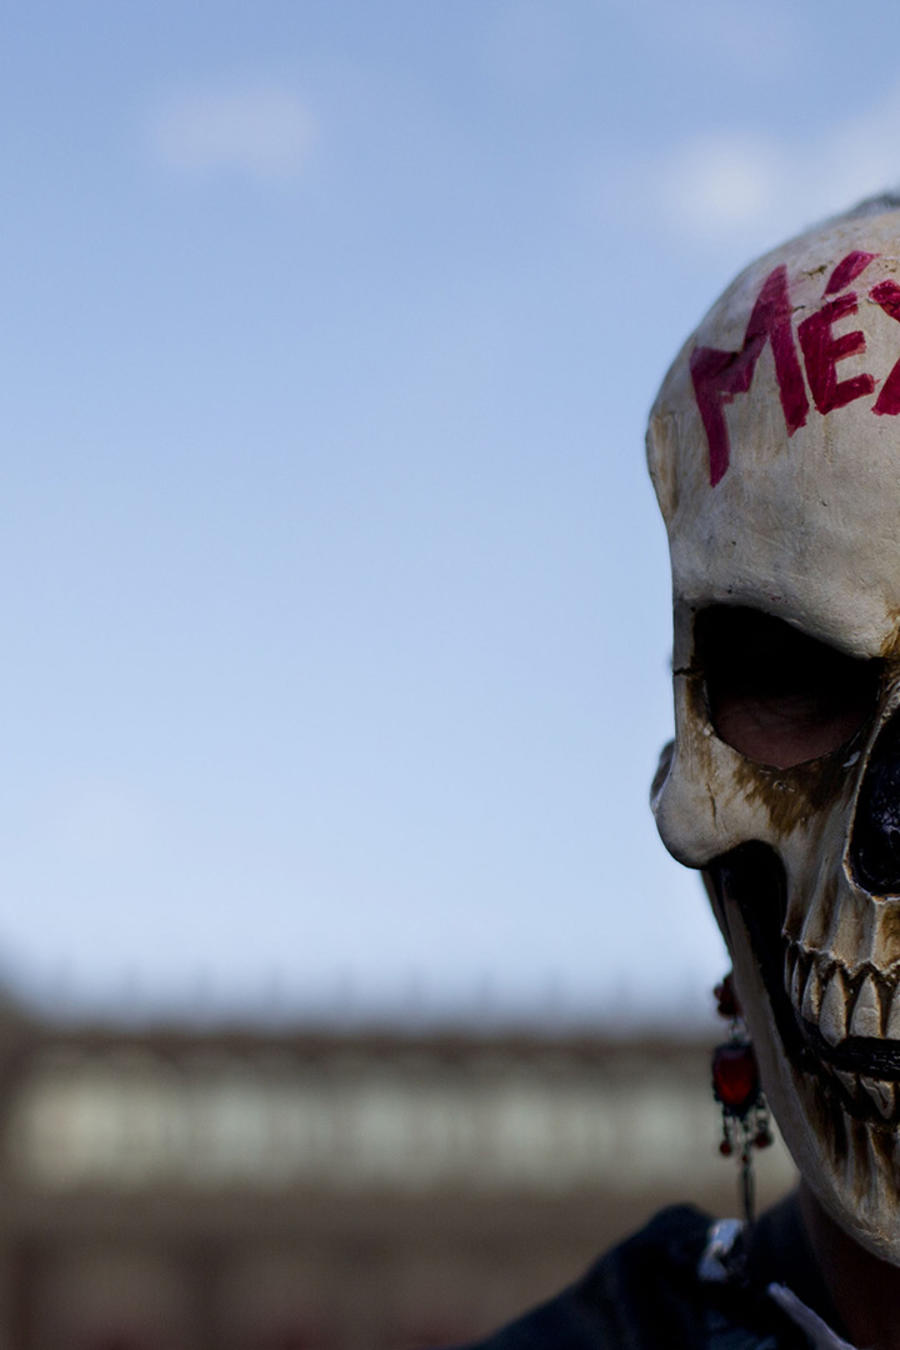 A woman wears a skull mask as she stands in front of the National Palace during a rally by relatives and supporters of 43 missing teacher's college students in the Zocalo, Mexico City's main square, Wednesday, Sept. 23, 2015. Days ahead of the one year an